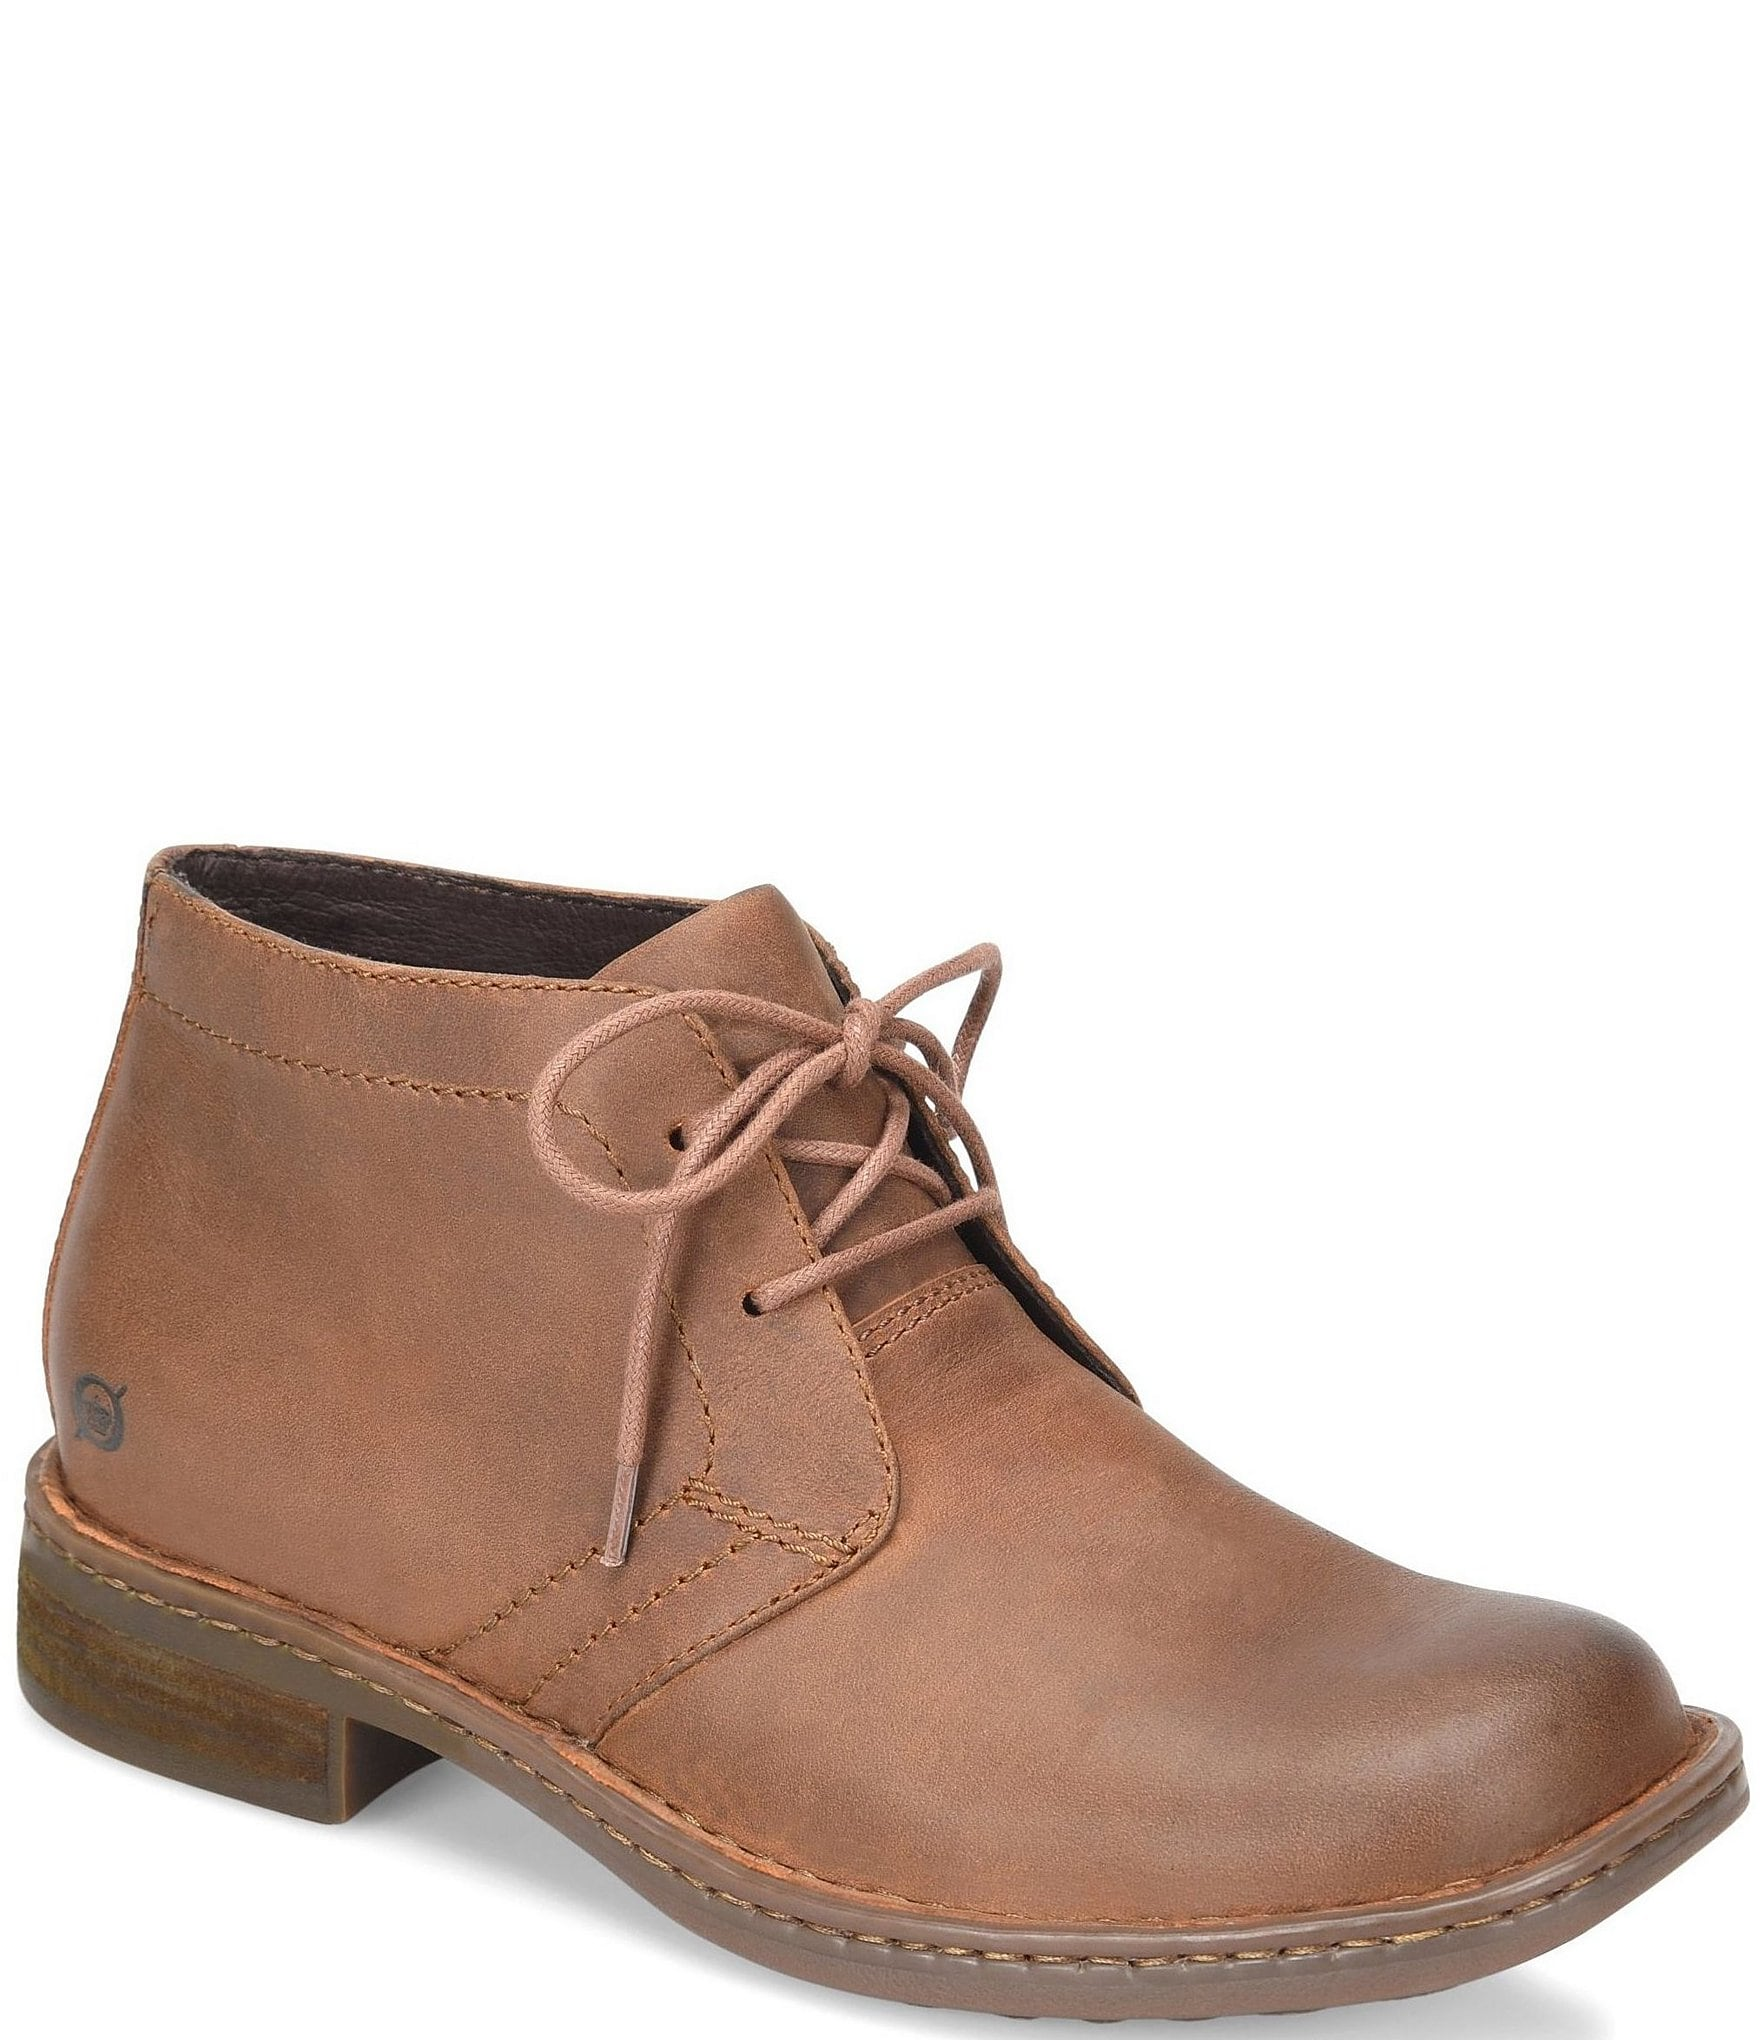 Born Mens Shoes Clearance